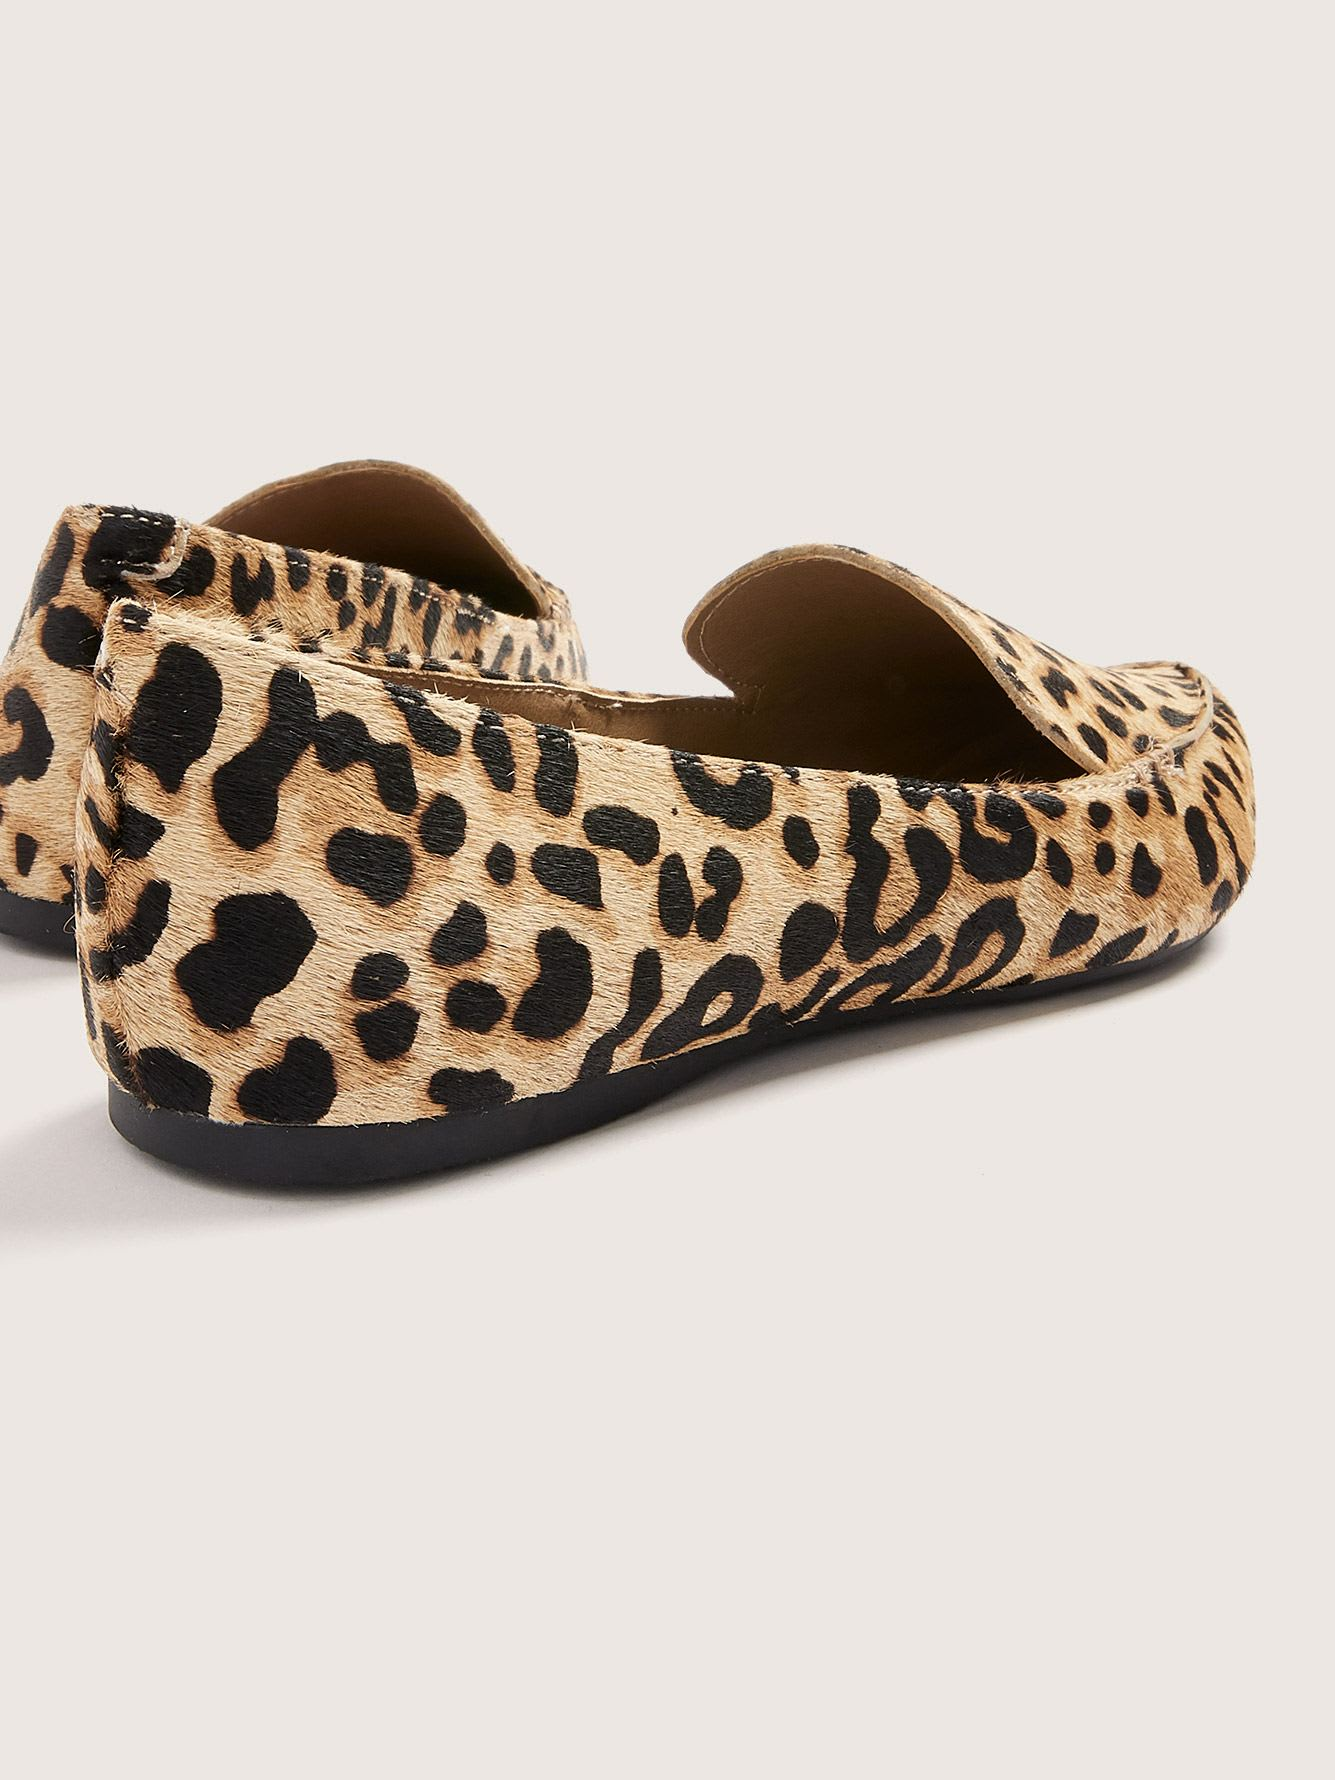 Wide Width Leopard Feather Loafers - Steve Madden